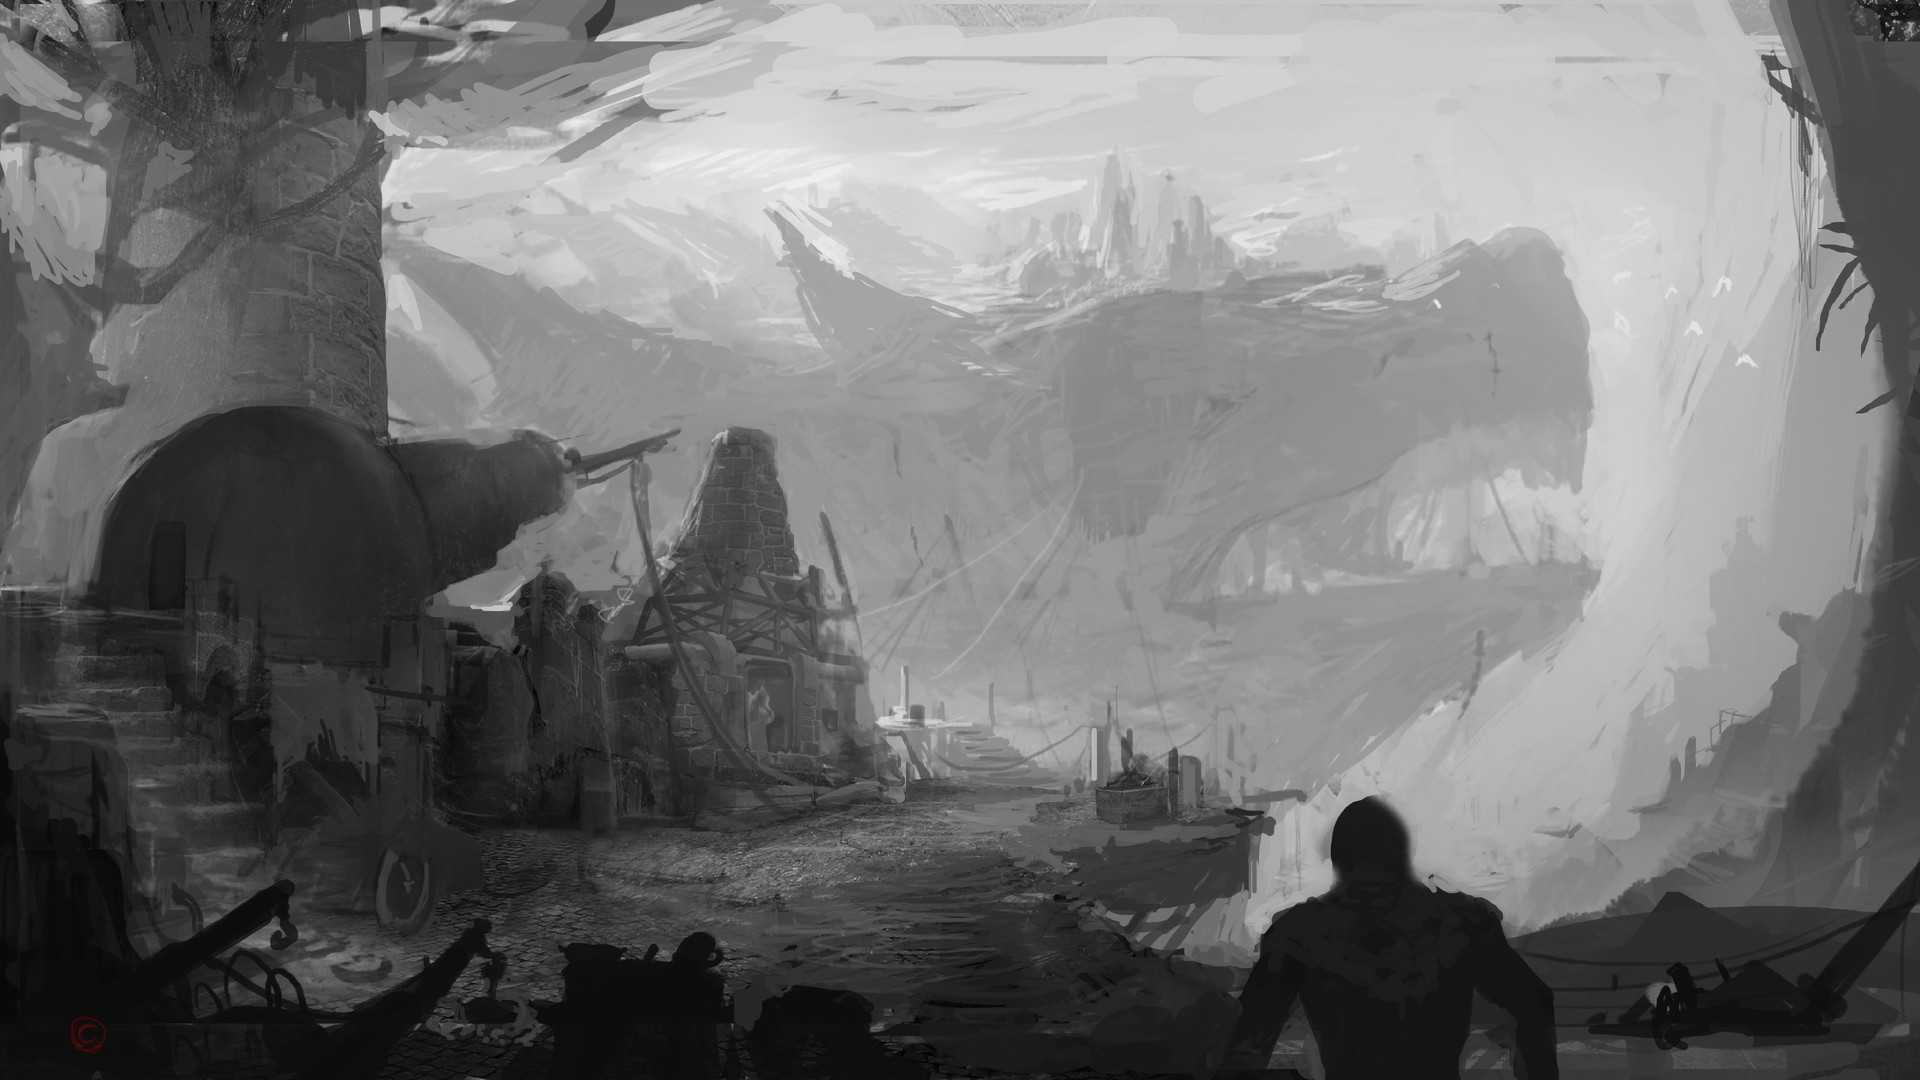 Alan dukardt 2d environment art challengeadukardtartsketch3